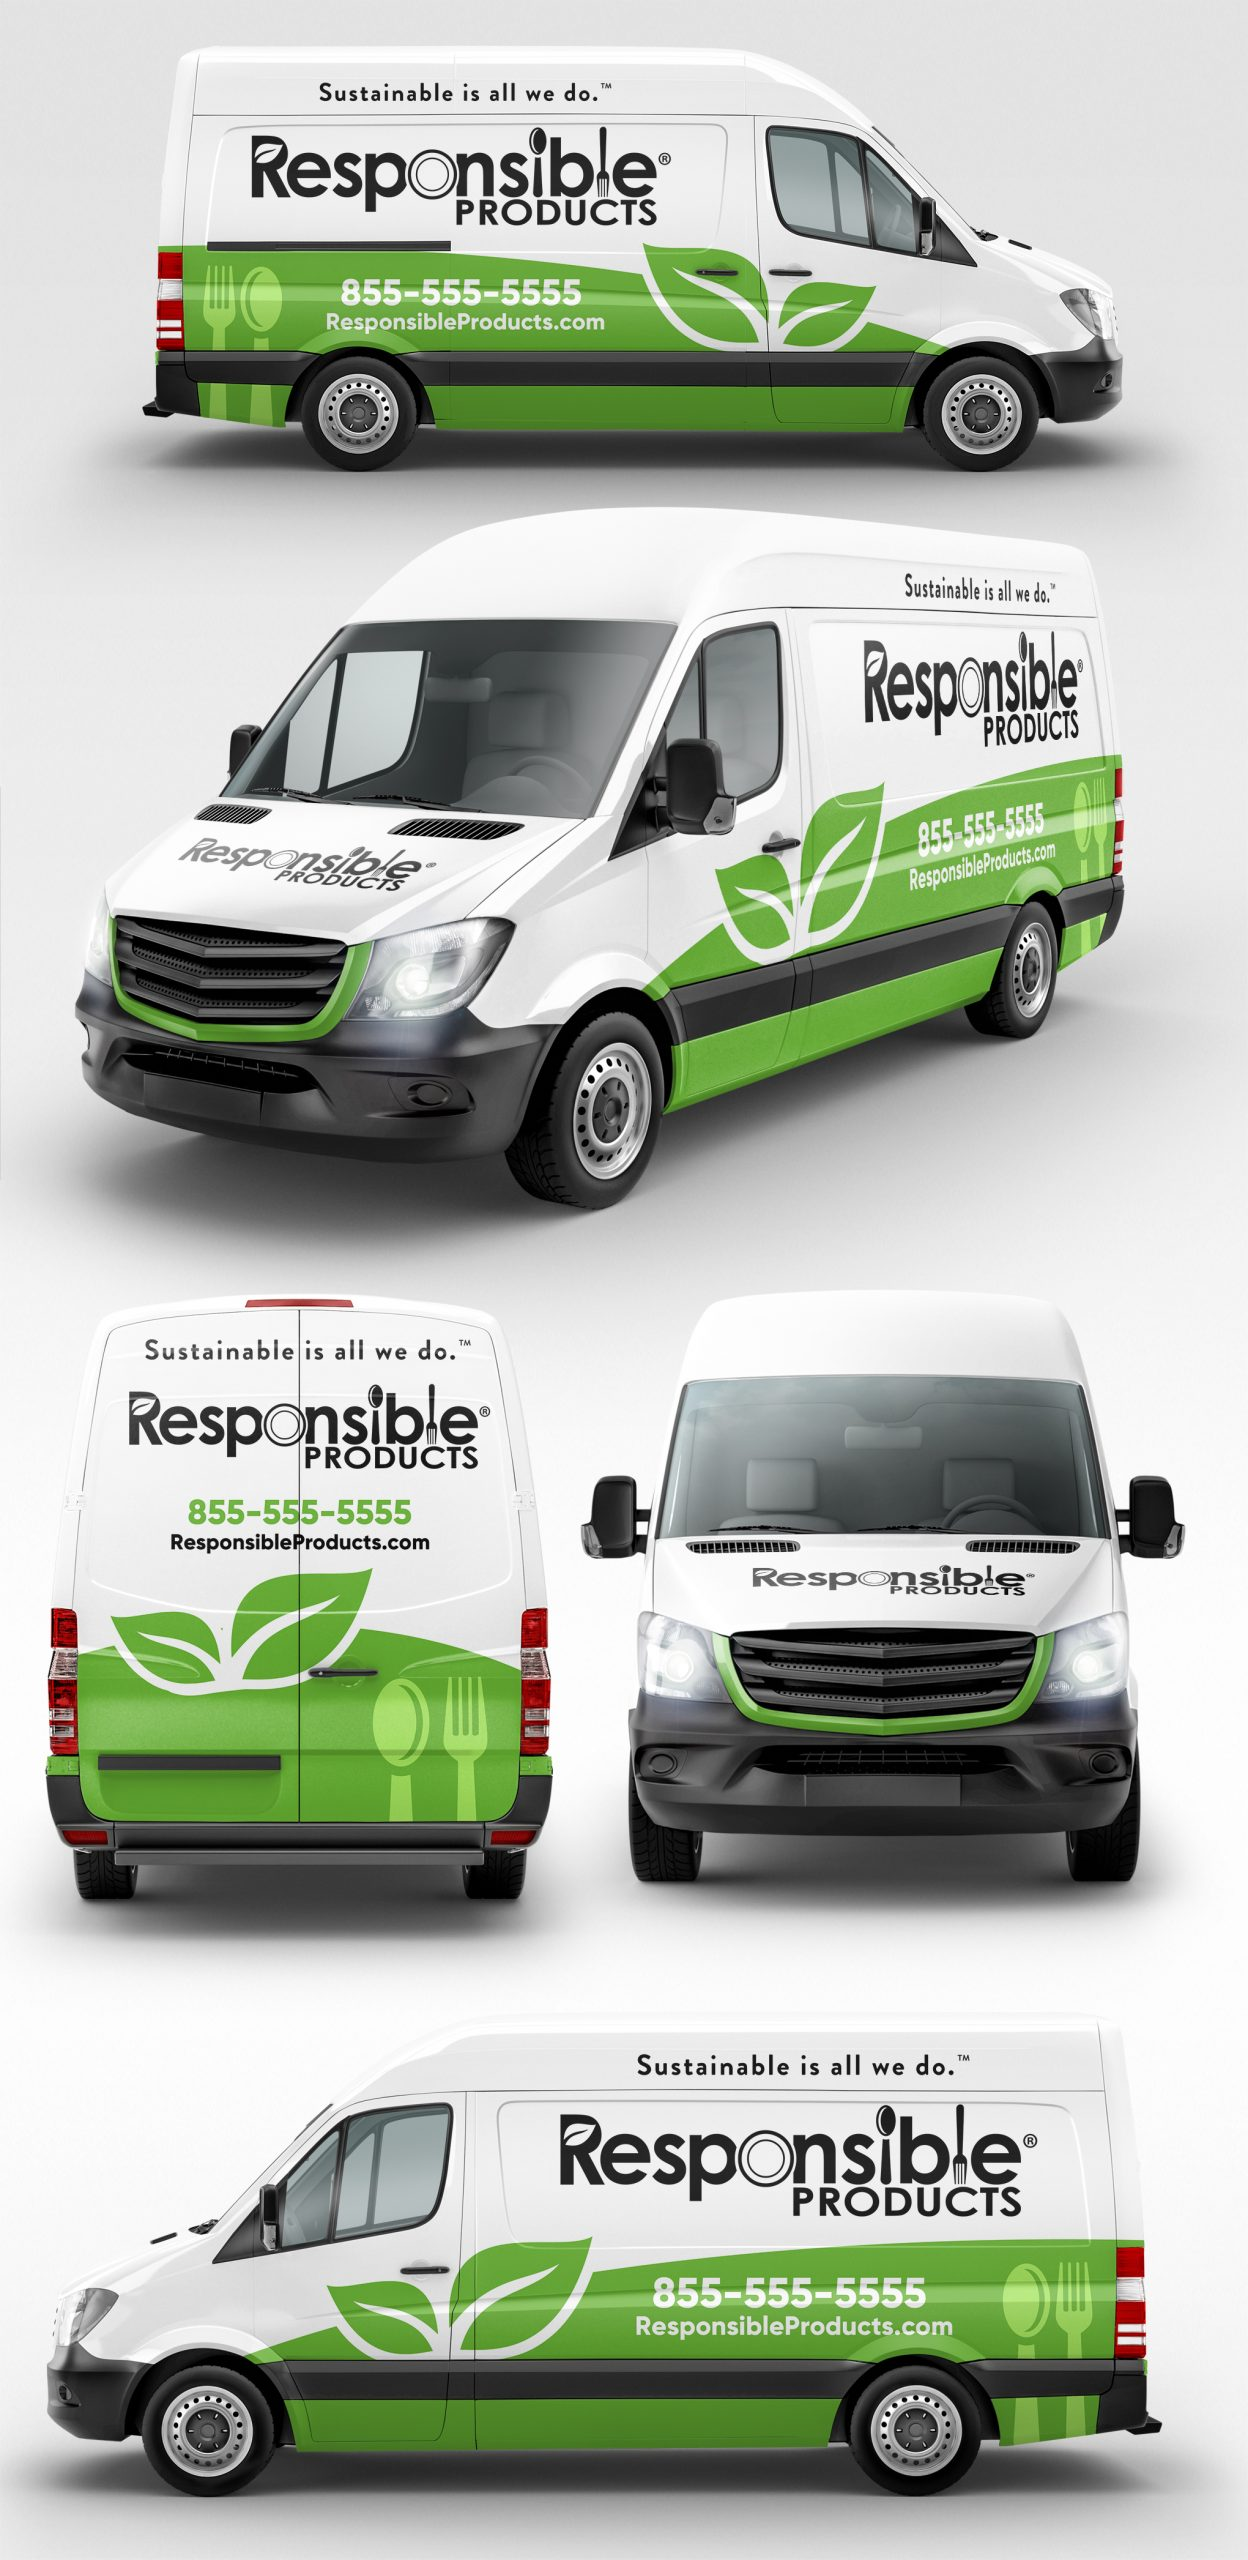 Responsible Products wrap